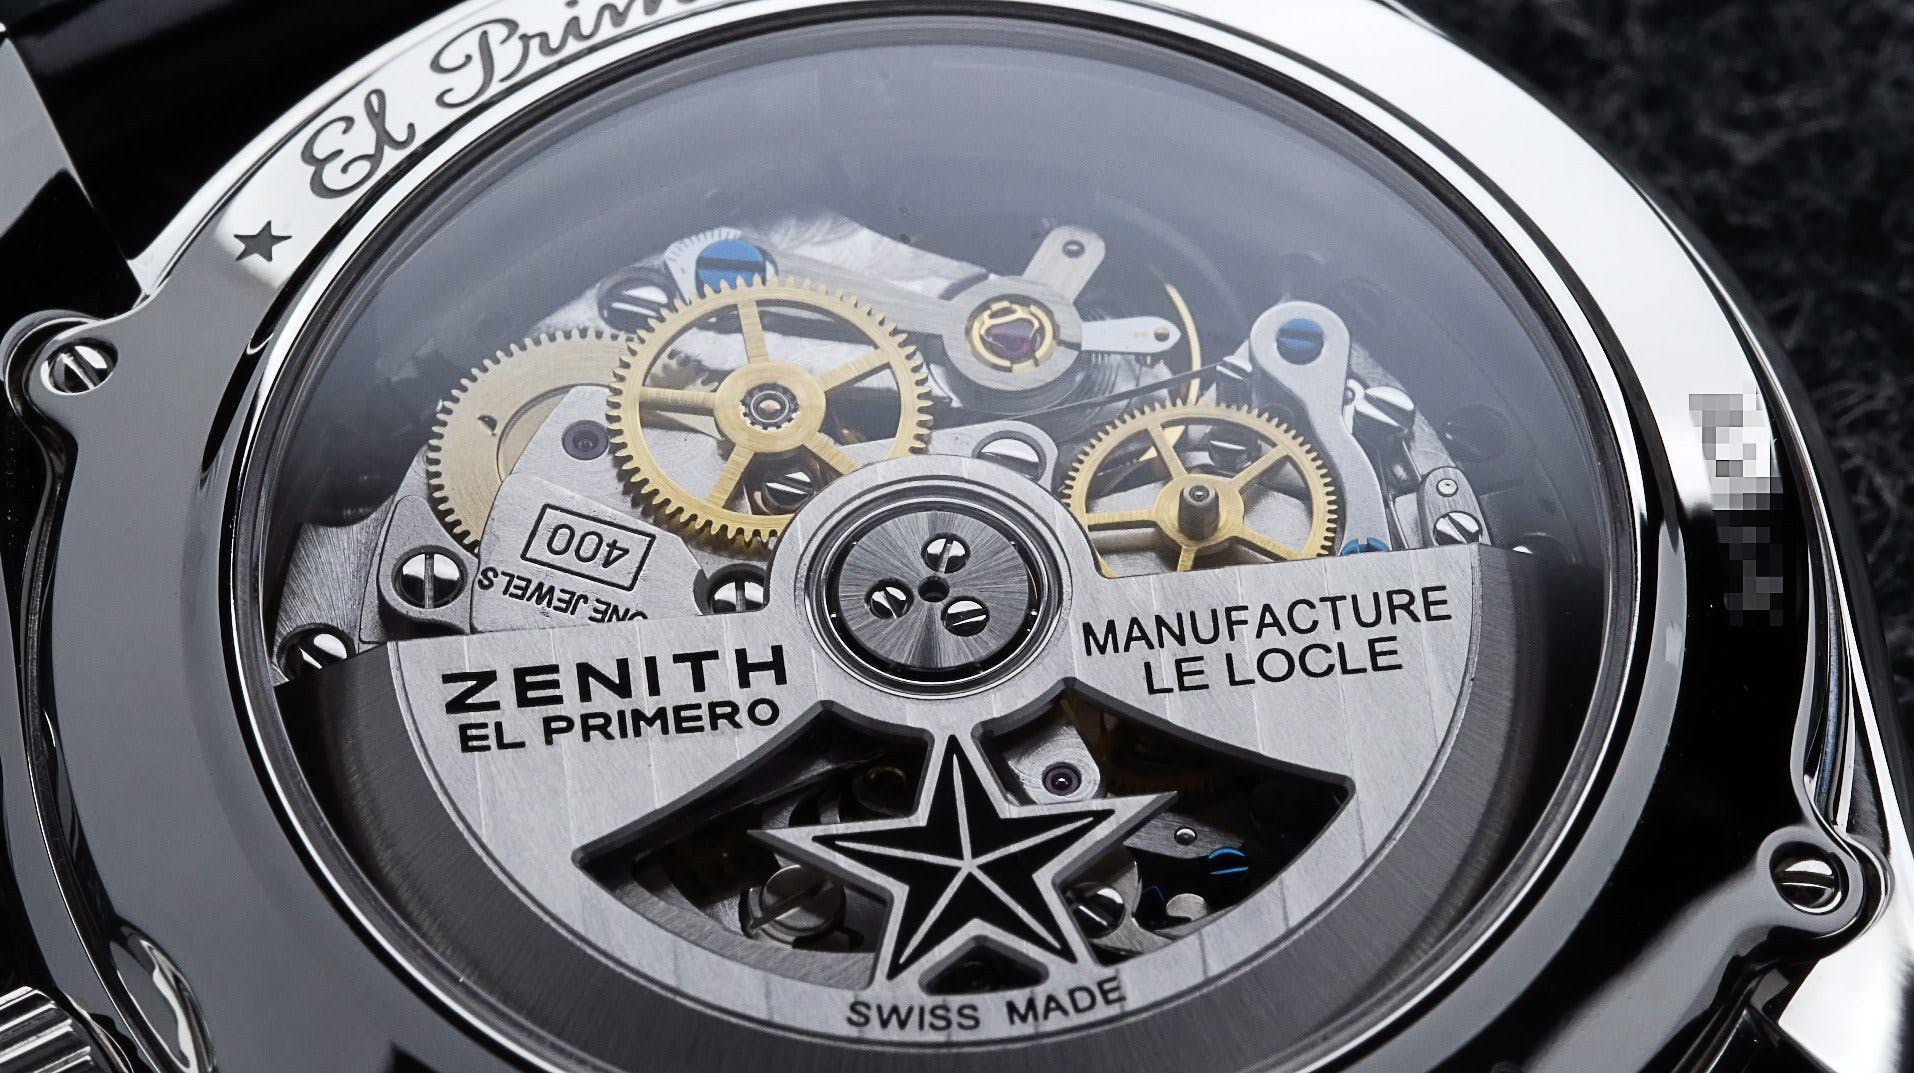 El Primero movement through the sapphire case back